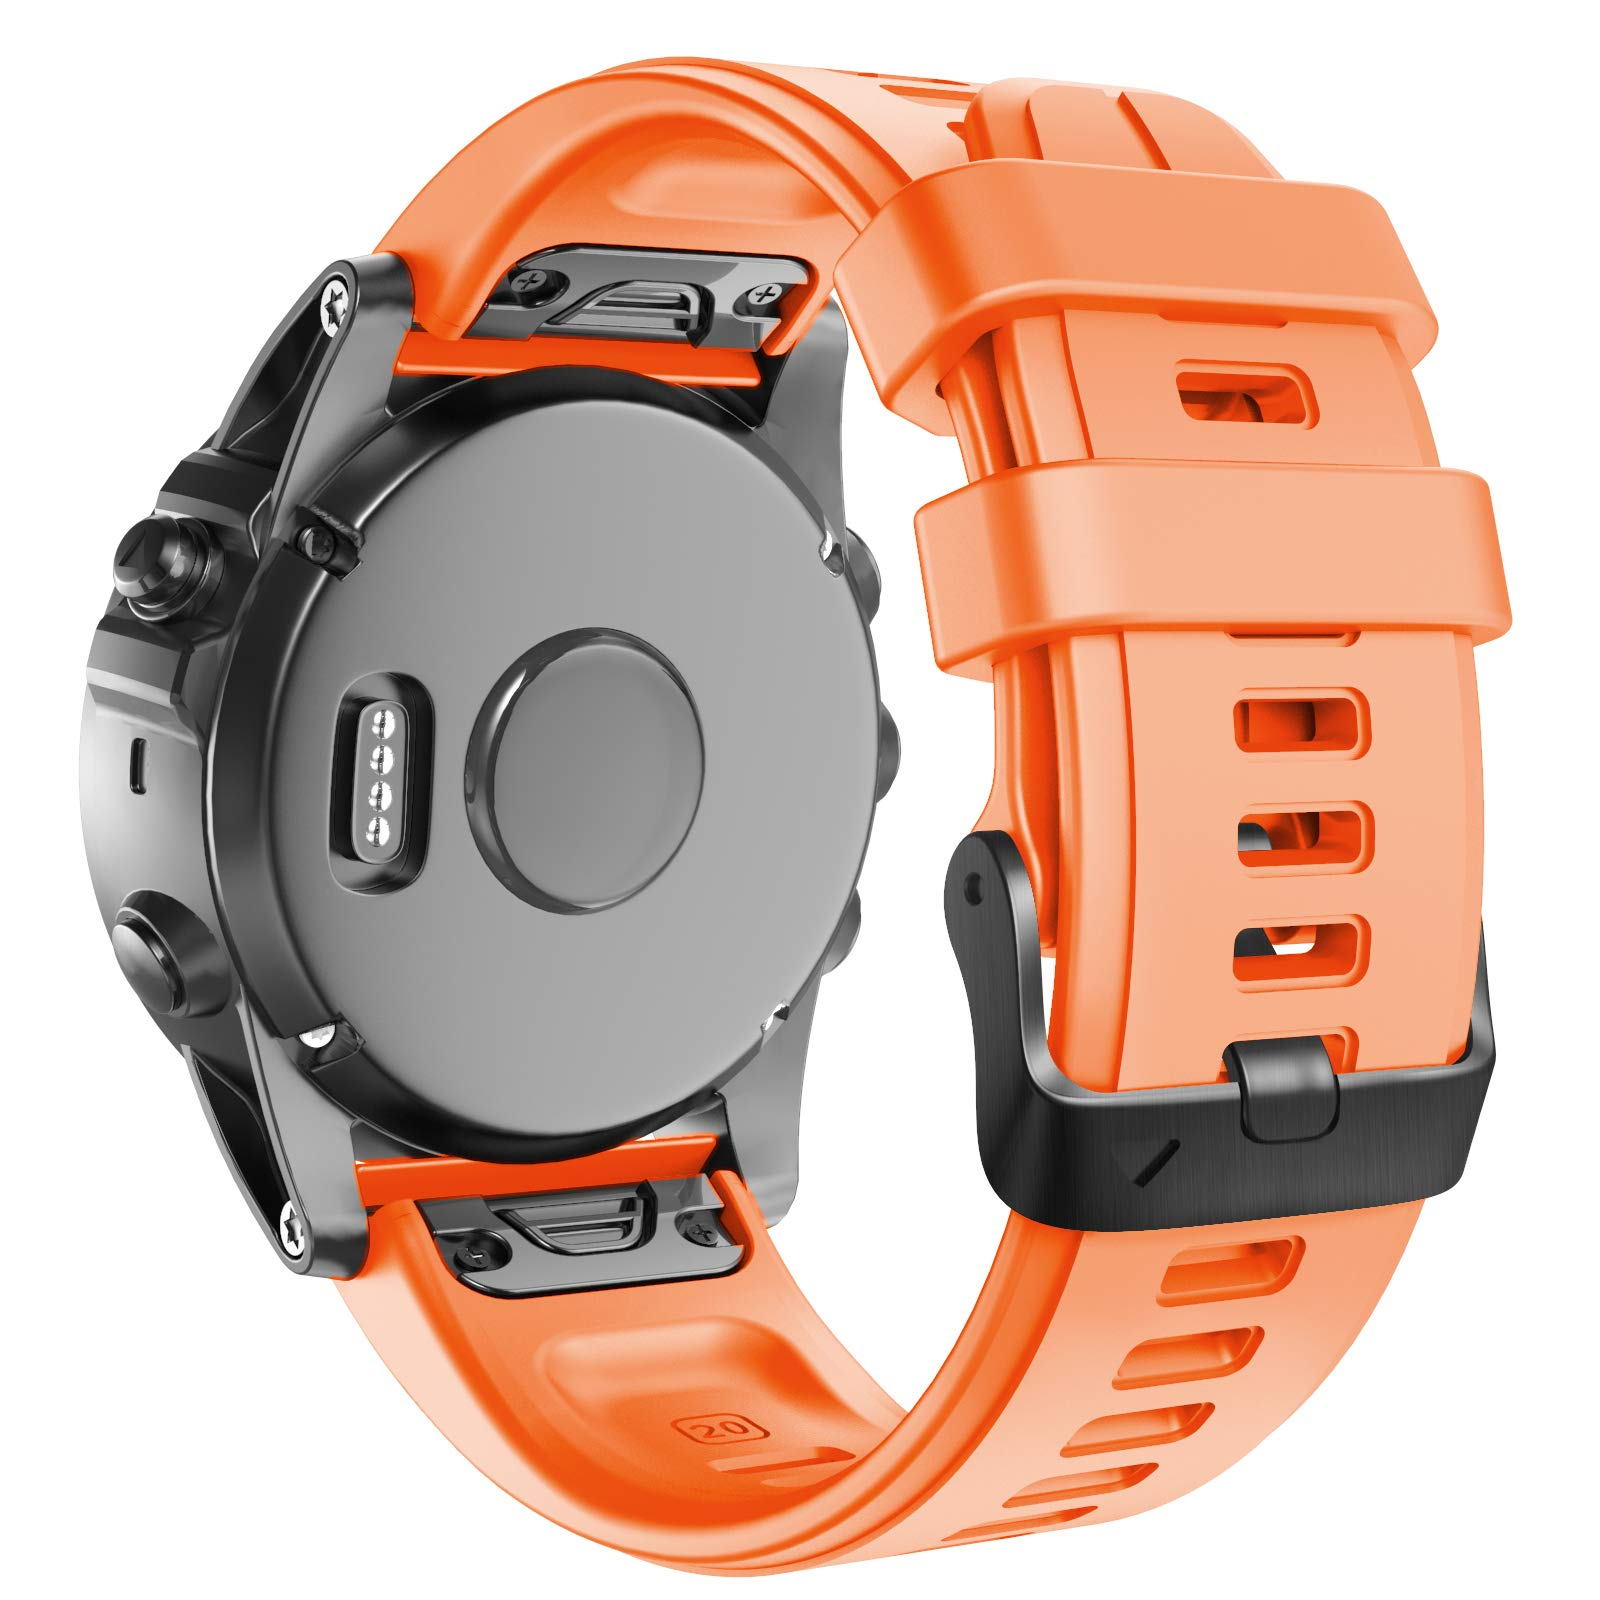 ANCOOL Compatible with Fenix 5S Plus Bands 20mm Width Easy Fit Soft Silicone Watch Bands Replacement for Fenix 6S/Fenix 6S Pro/Fenix 5S Smartwatches, Orange